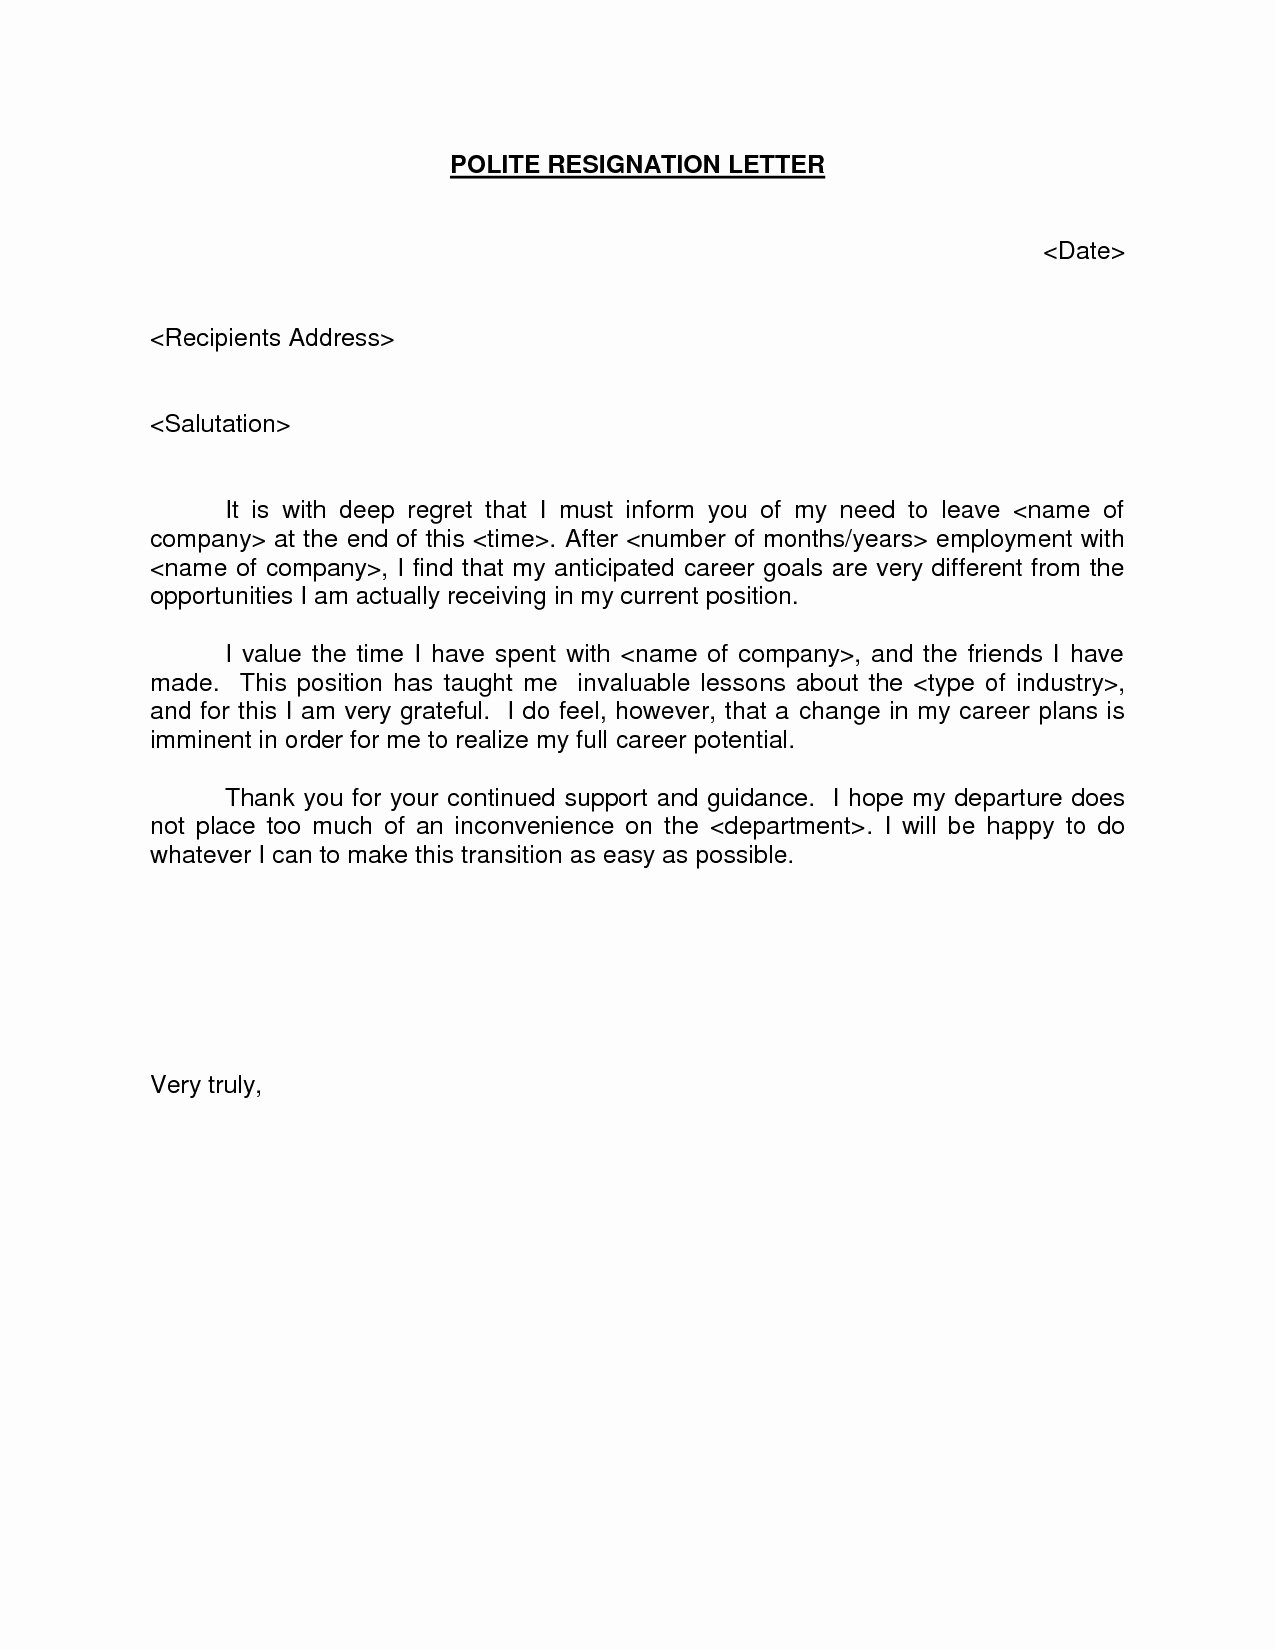 Letter Of Retirement Template Luxury Retirement Letter to Employer Template Samples